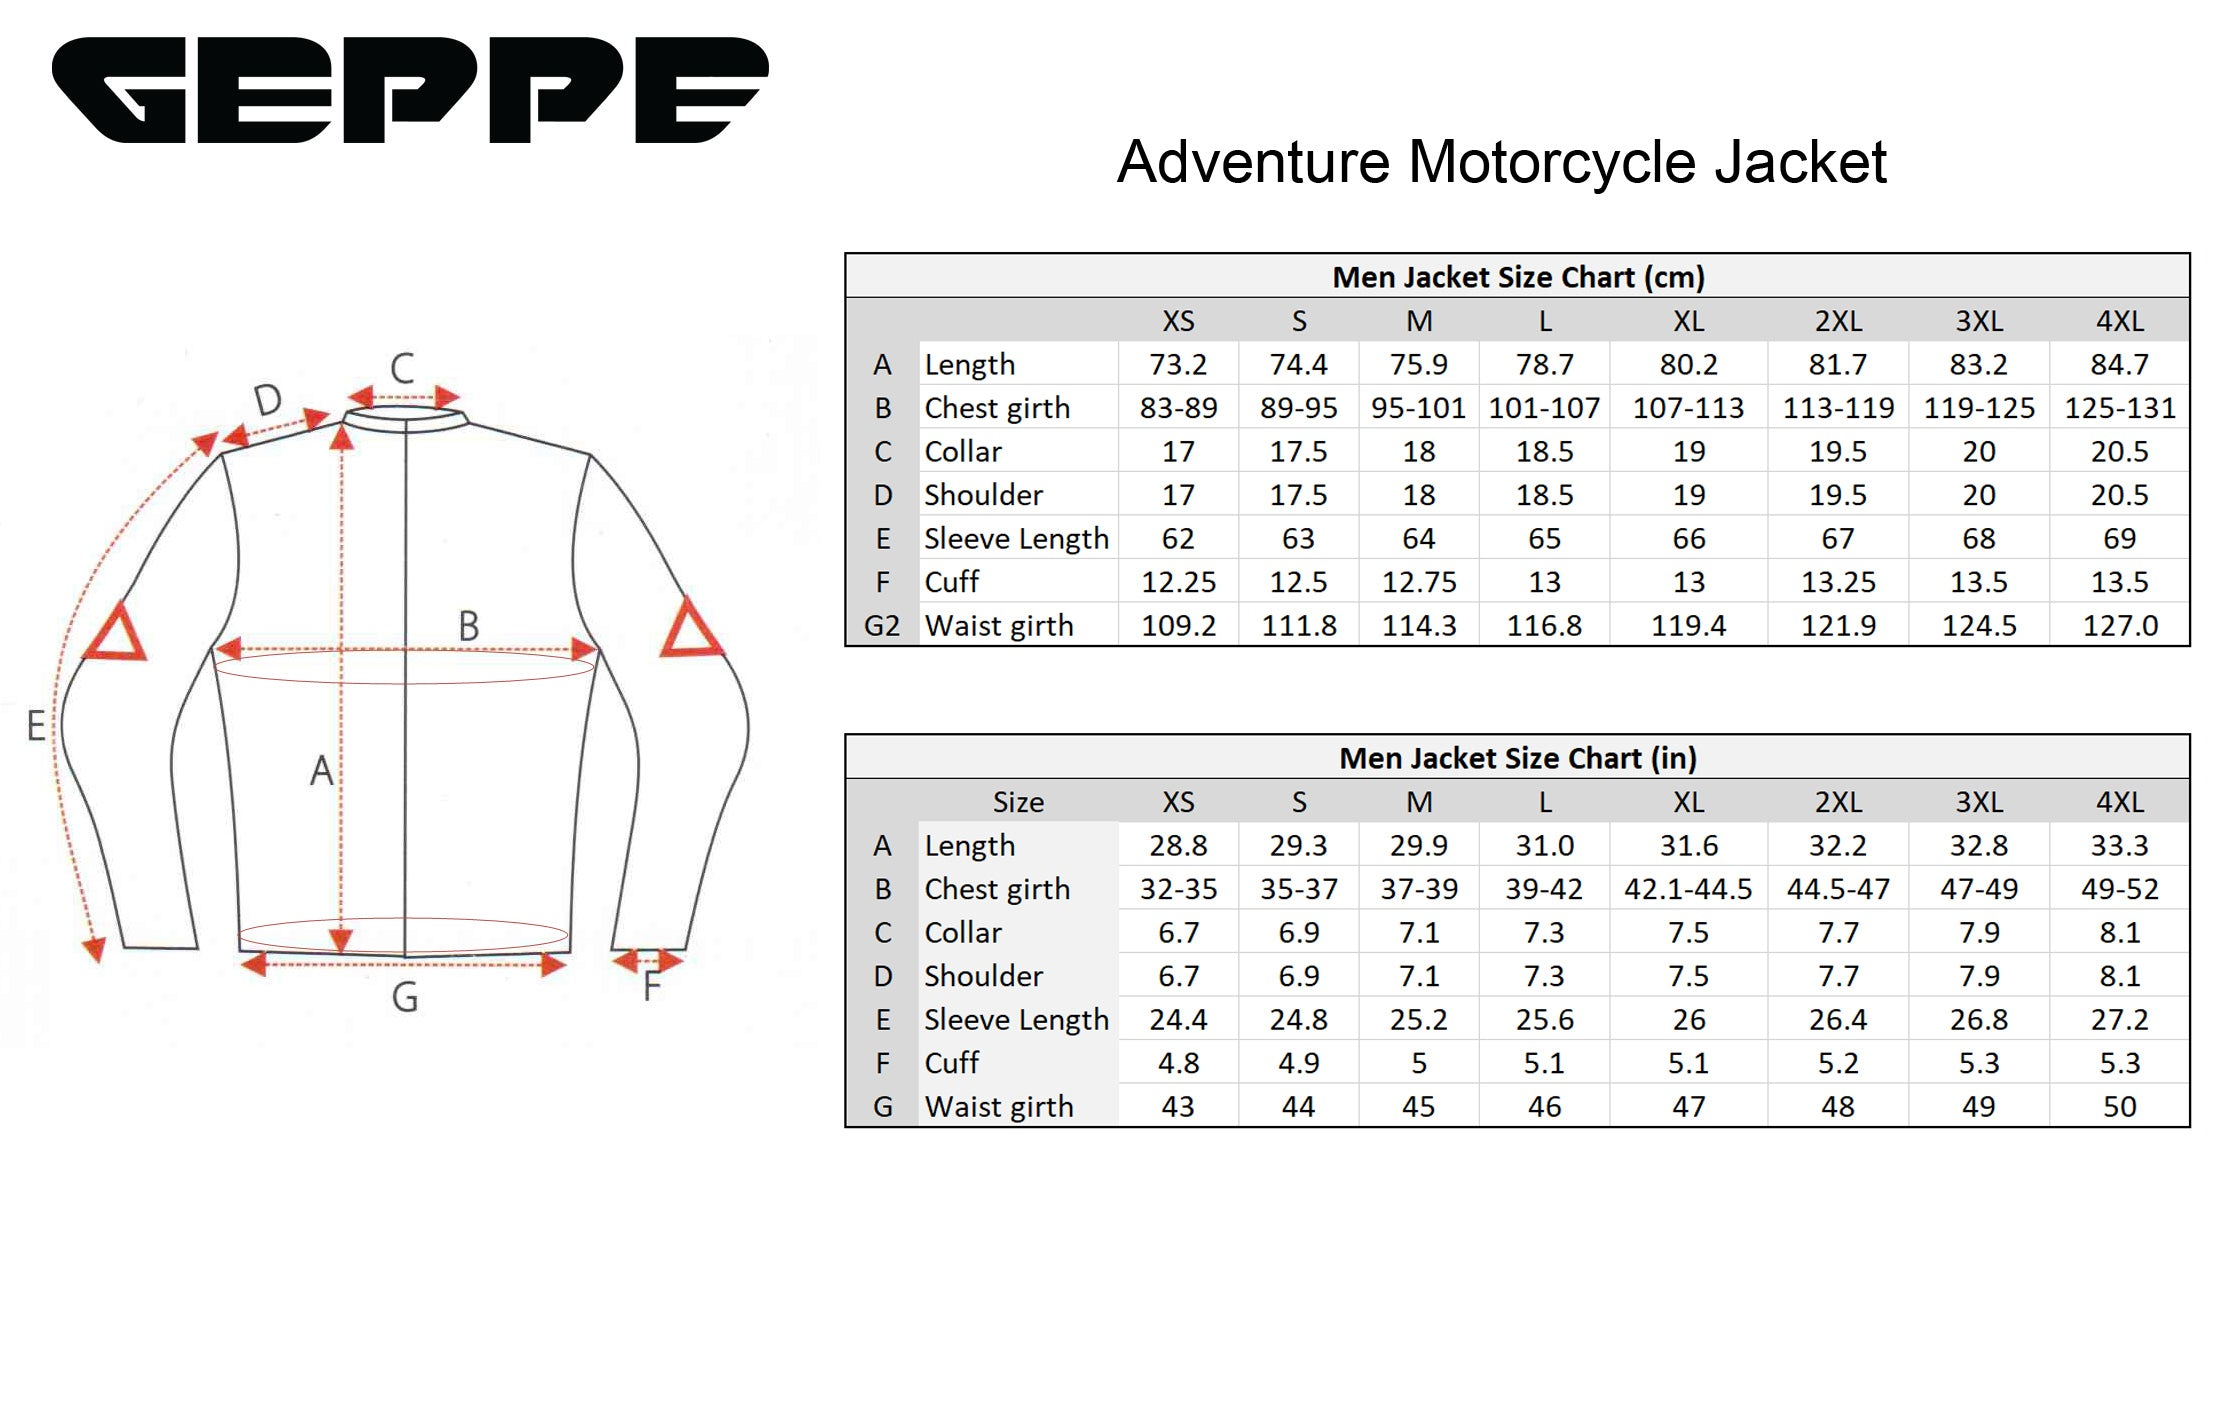 Geppe Adventure Jacket Size Chart